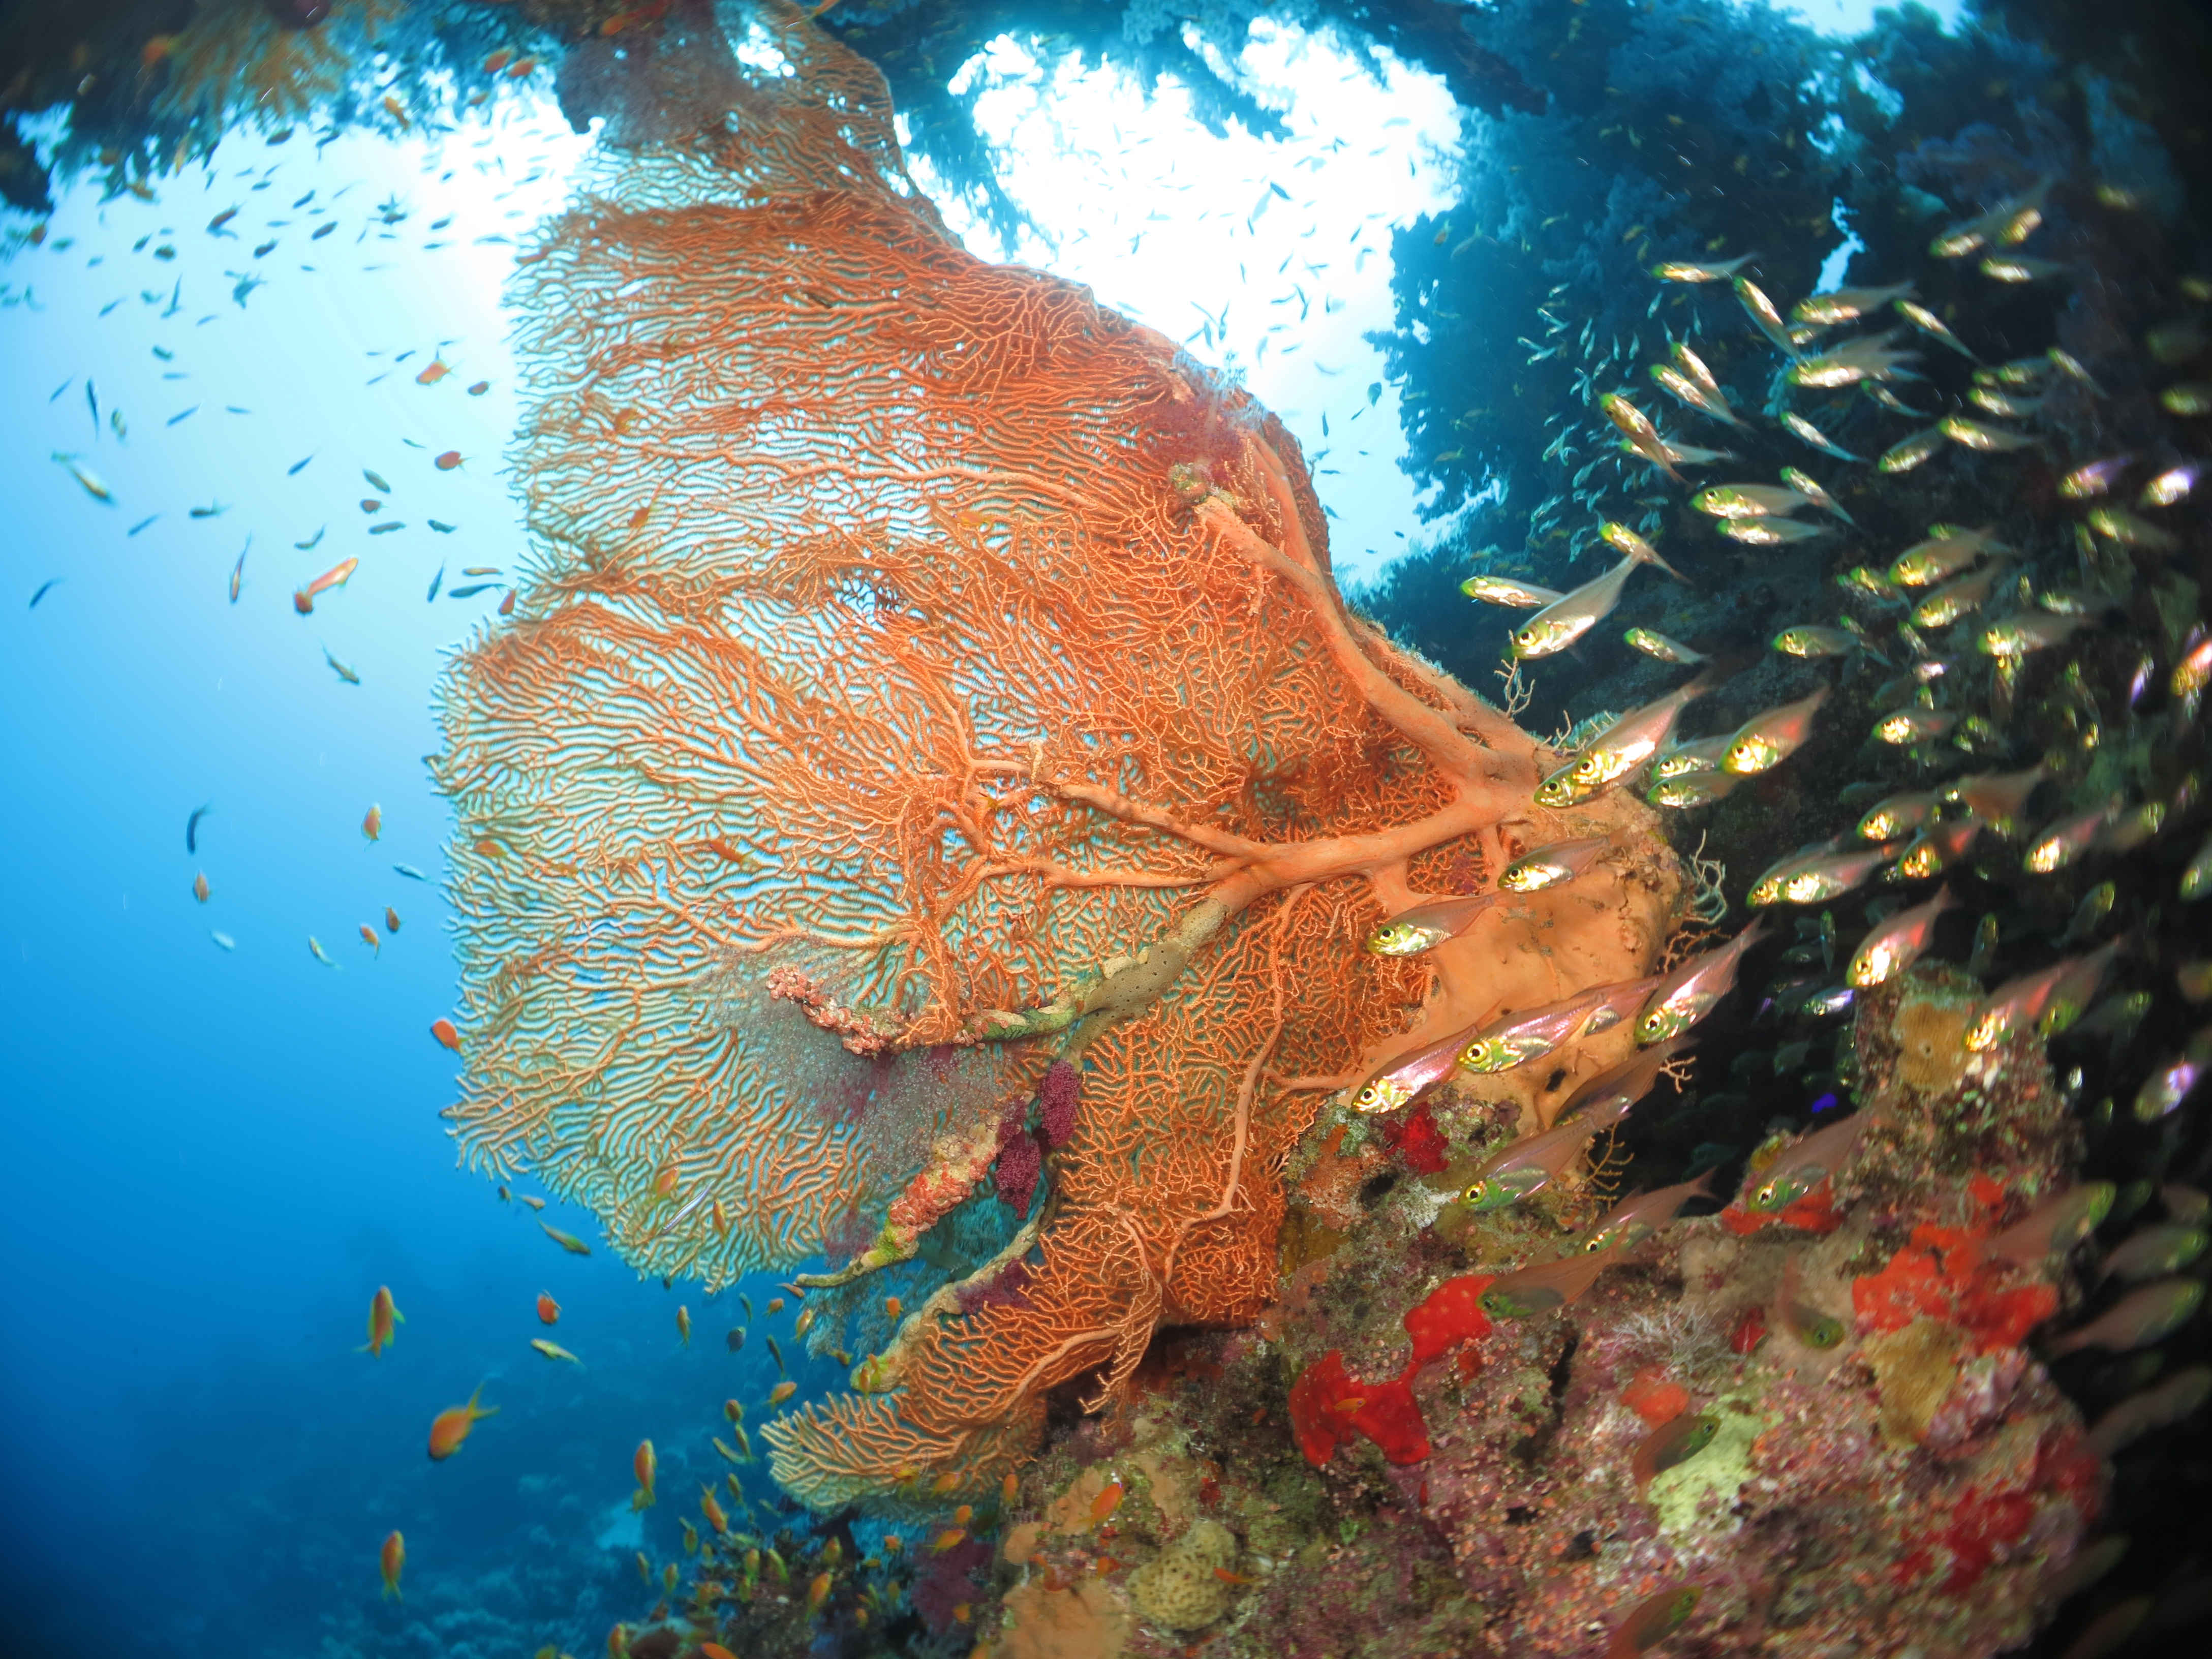 The coral reefs and colorful fishes deep under Red Sea water for diving in El Gouna